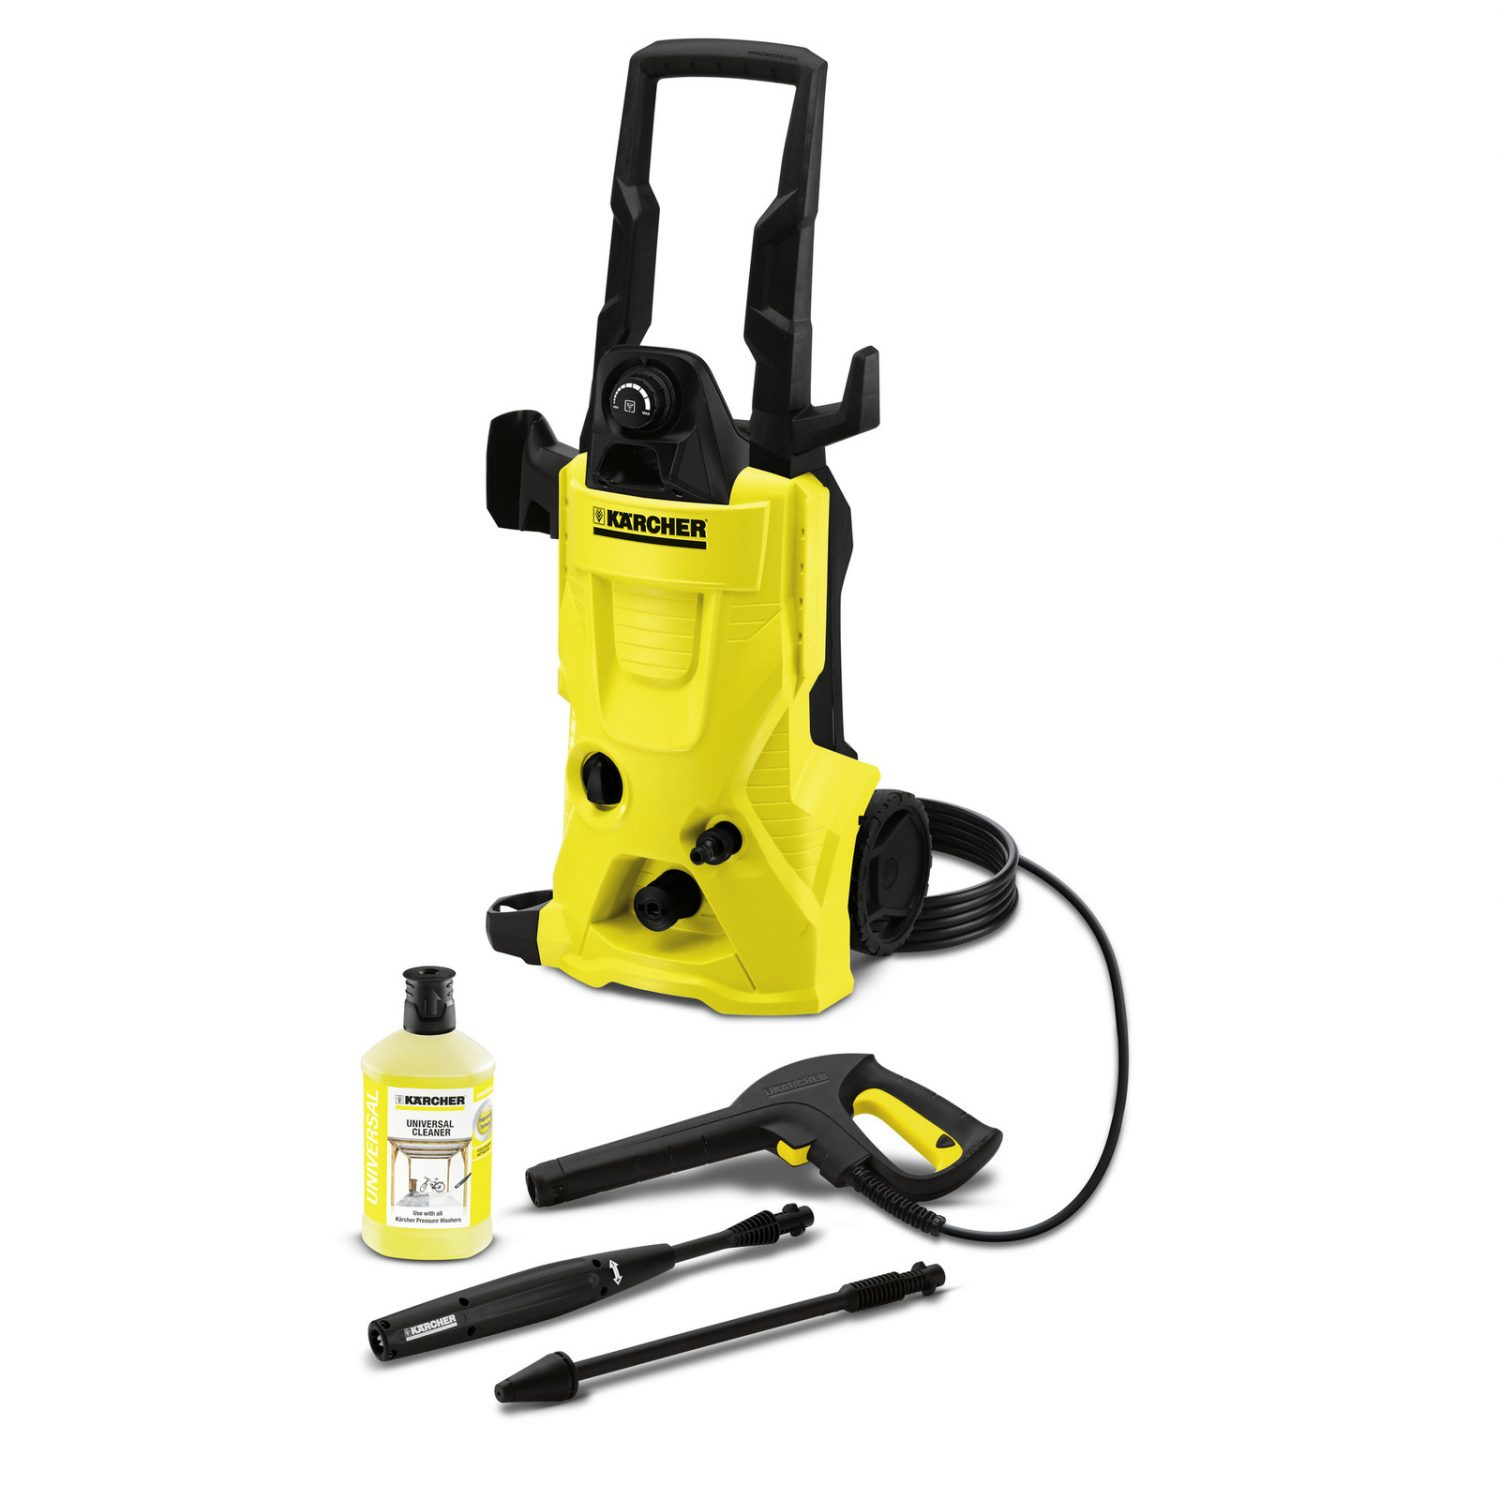 KARCHER 1.180-151.0 - K4 High Pressure Washer